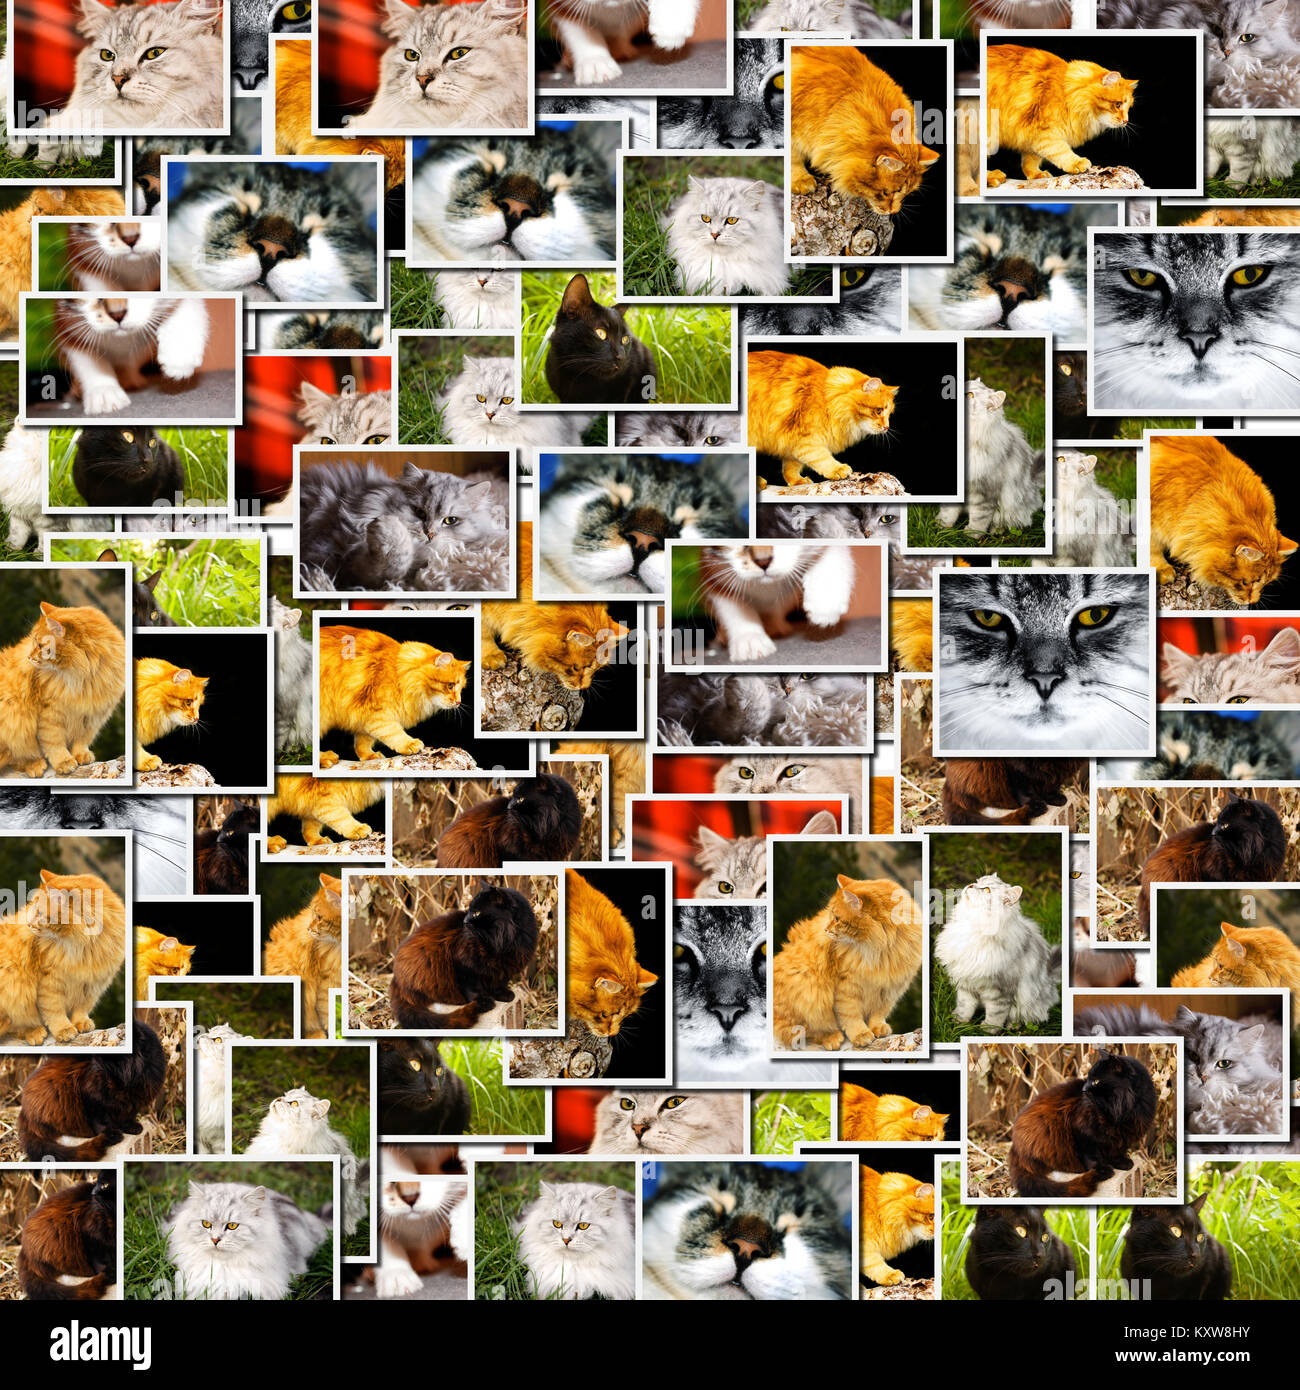 Collage several cats pictures - Stock Image